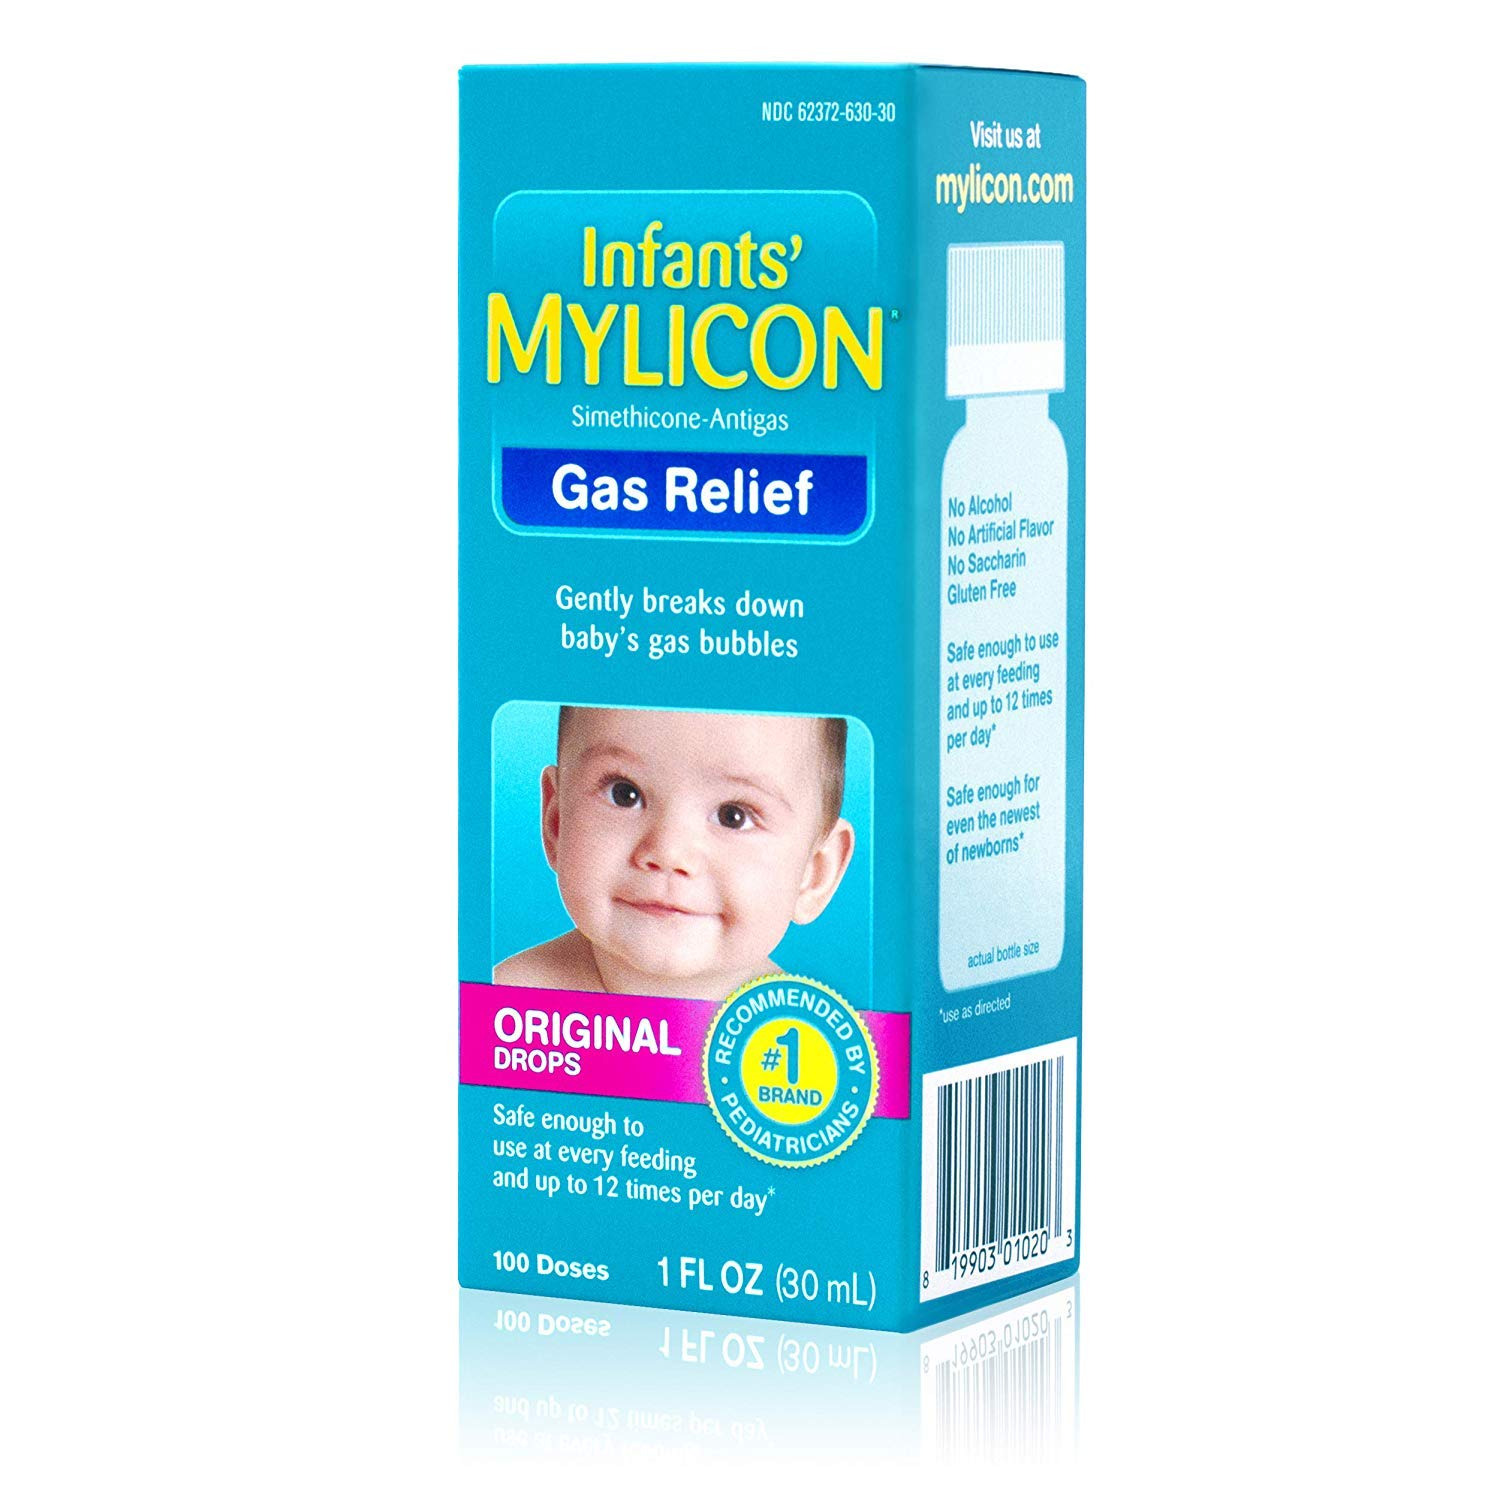 Mylicon Infants' Gas Relief Original Drops - 1 oz, Pack of 3 by Mylicon